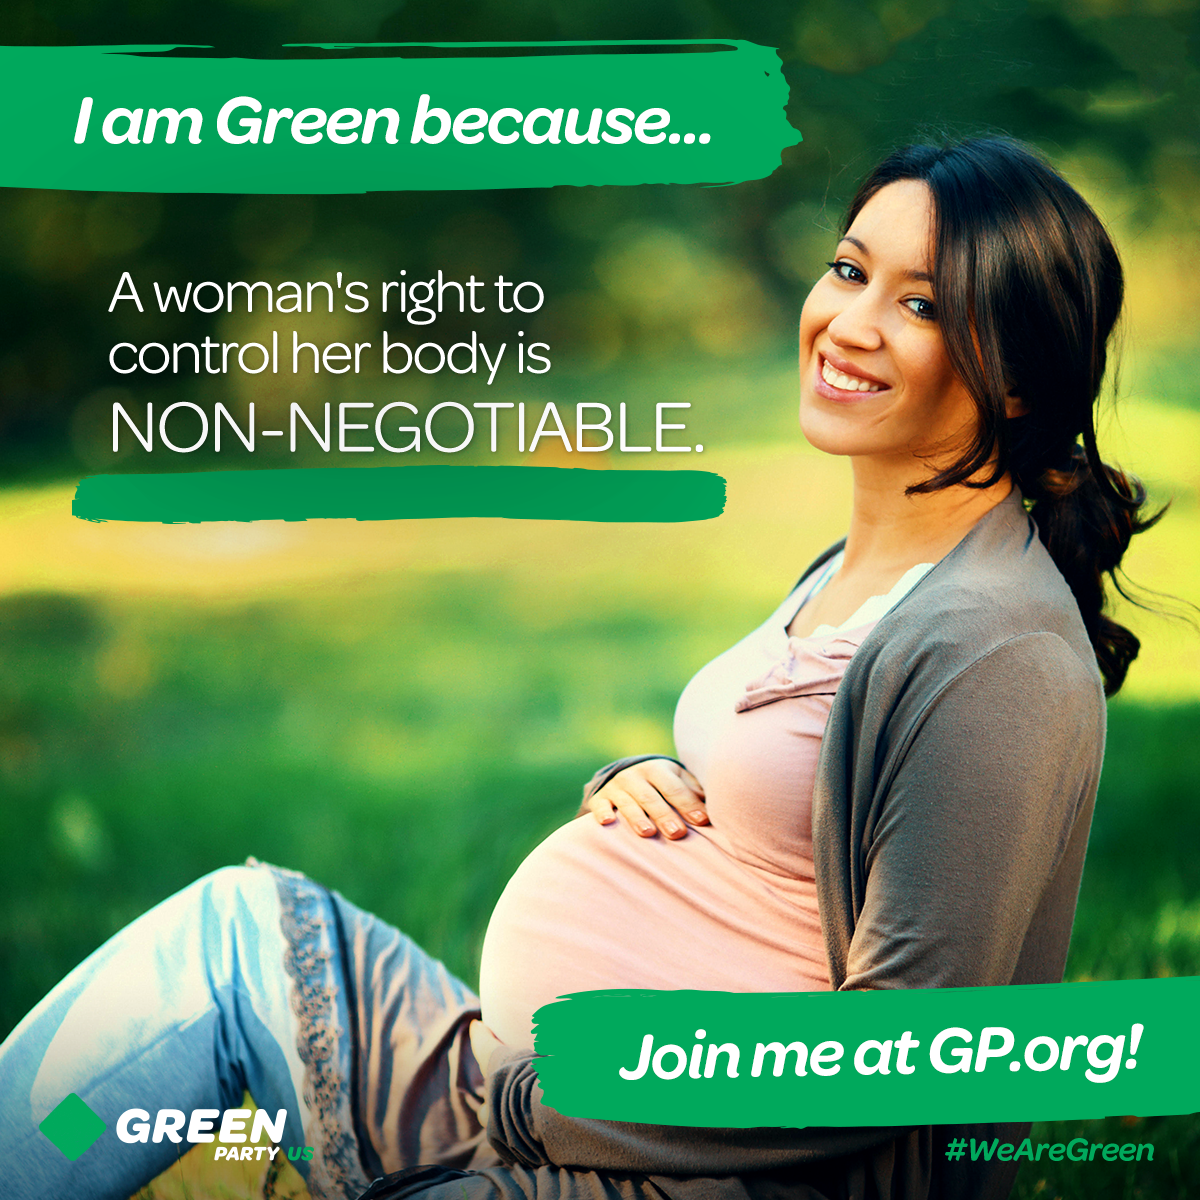 GPUS_m_IamGreen-WomensRight_1.png